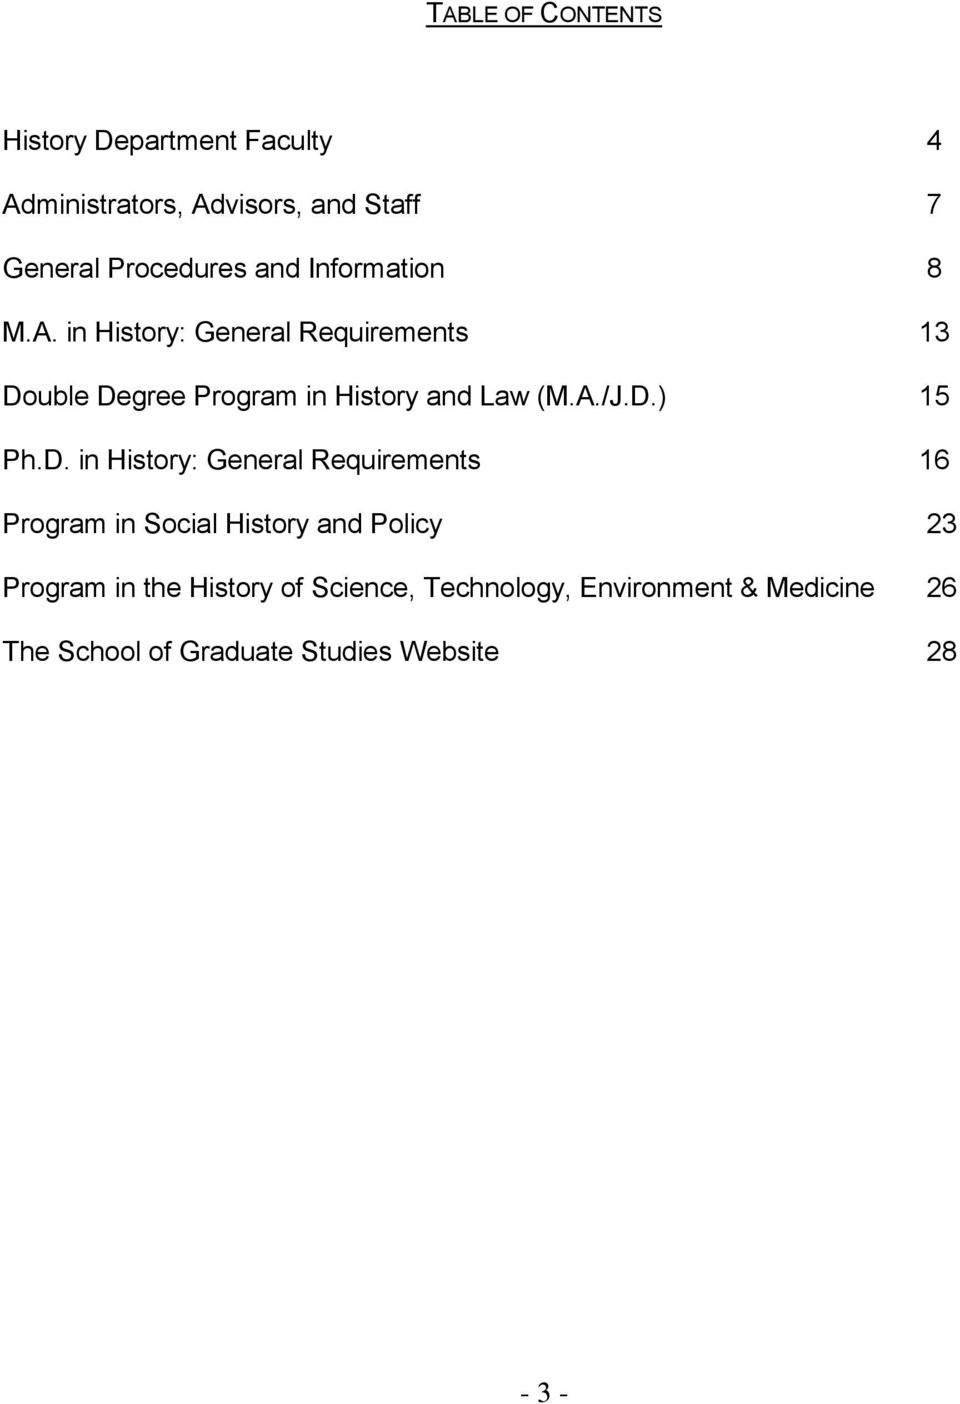 D.) 15 Ph.D. in History: General Requirements 16 Program in Social History and Policy 23 Program in the